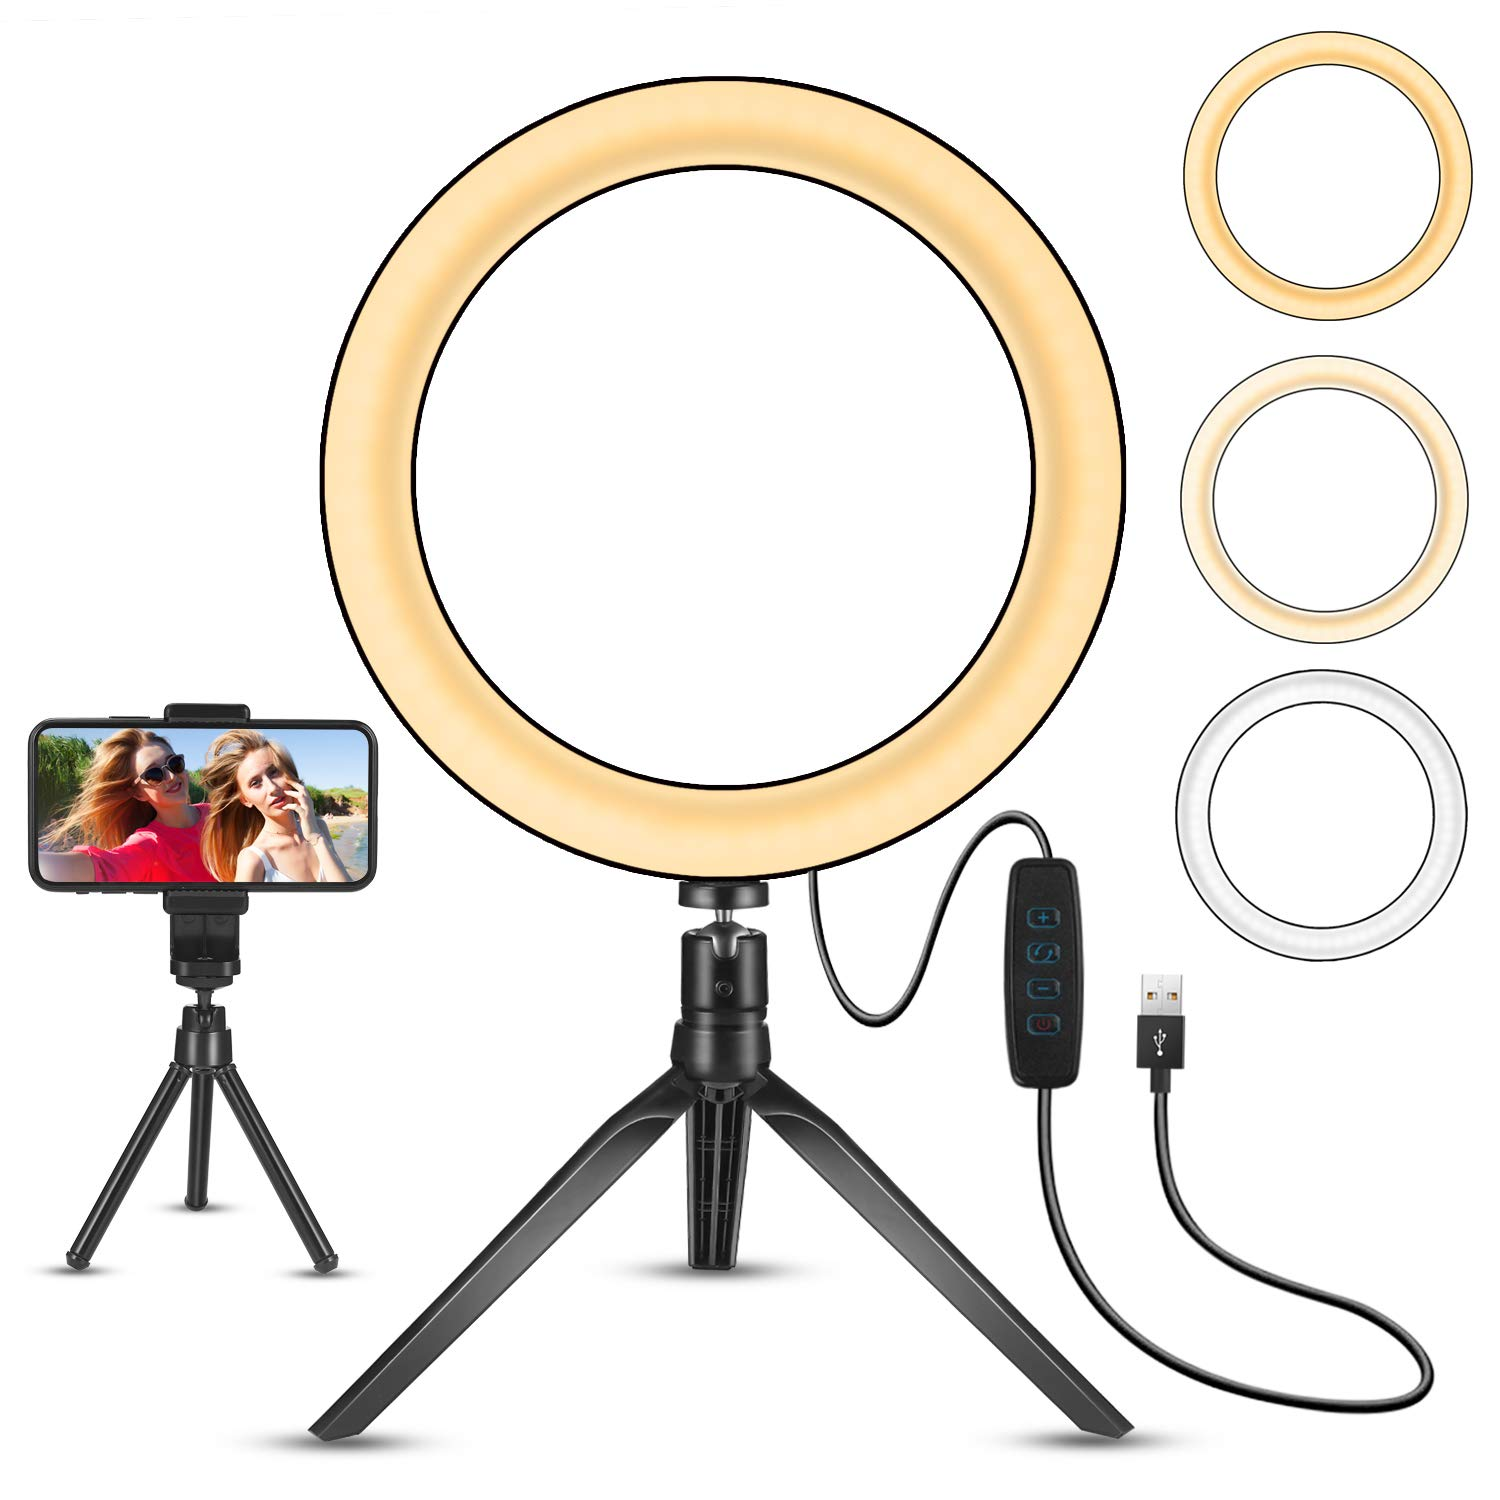 LED Ring Light 8'' with Stand Tripod for Makeup, Live Streaming & YouTube Video, Table LED Camera Light with Cell Phone Holder, Mini Dimmable Lamp with 3 Light Modes & 11 Brightness Level (8 inch)